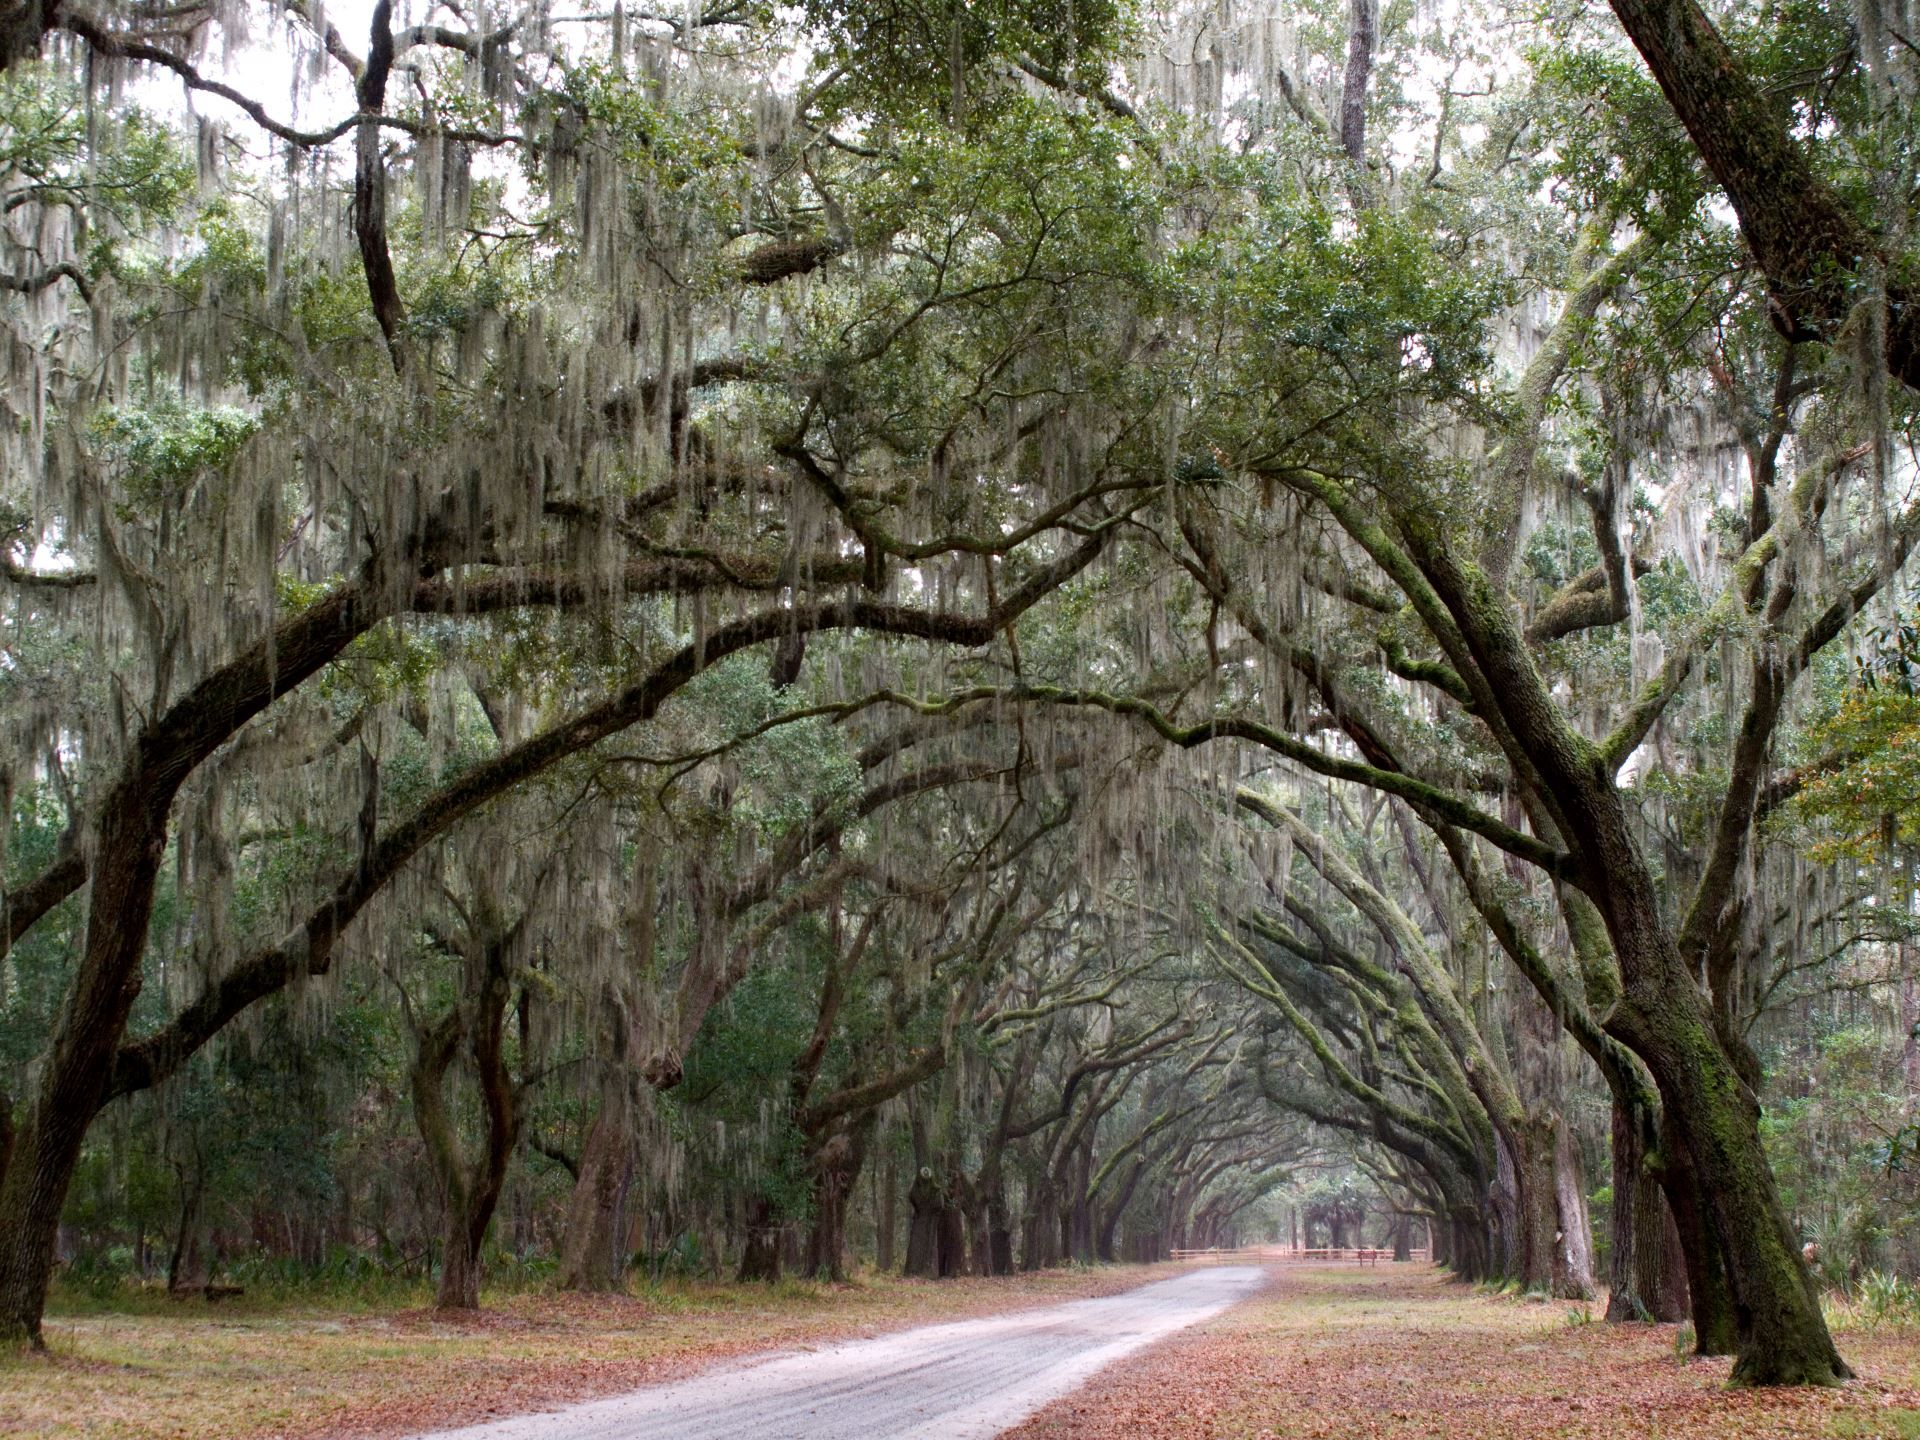 The 1.5 miles entrance to Wormsloe Historic Site in